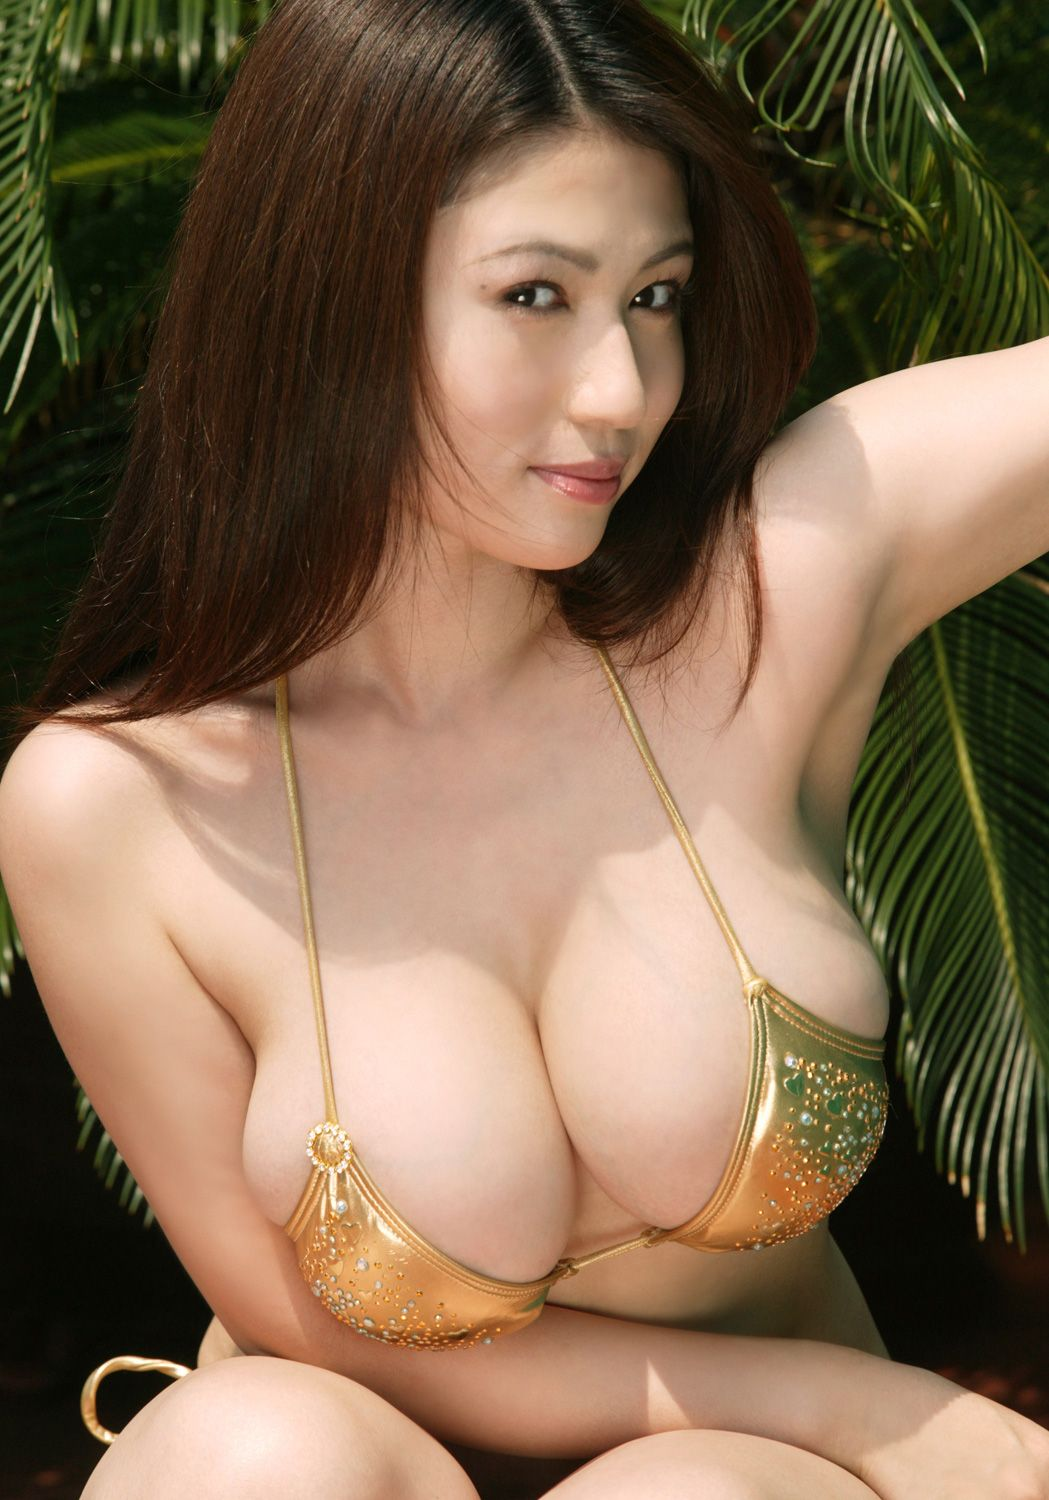 beautiful asian boobs photo sexy girls